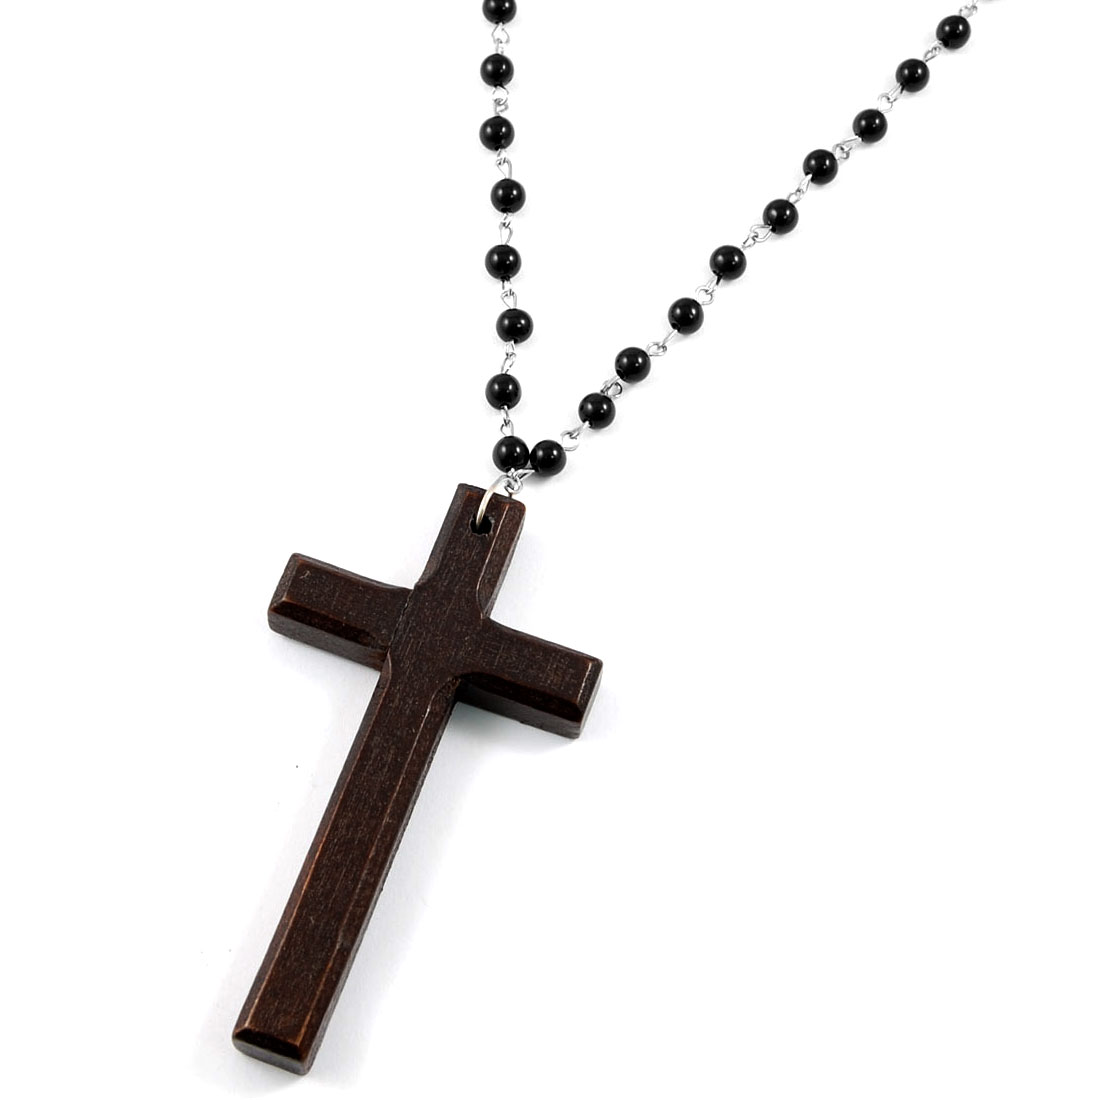 wooden cross pendant black linked necklace for